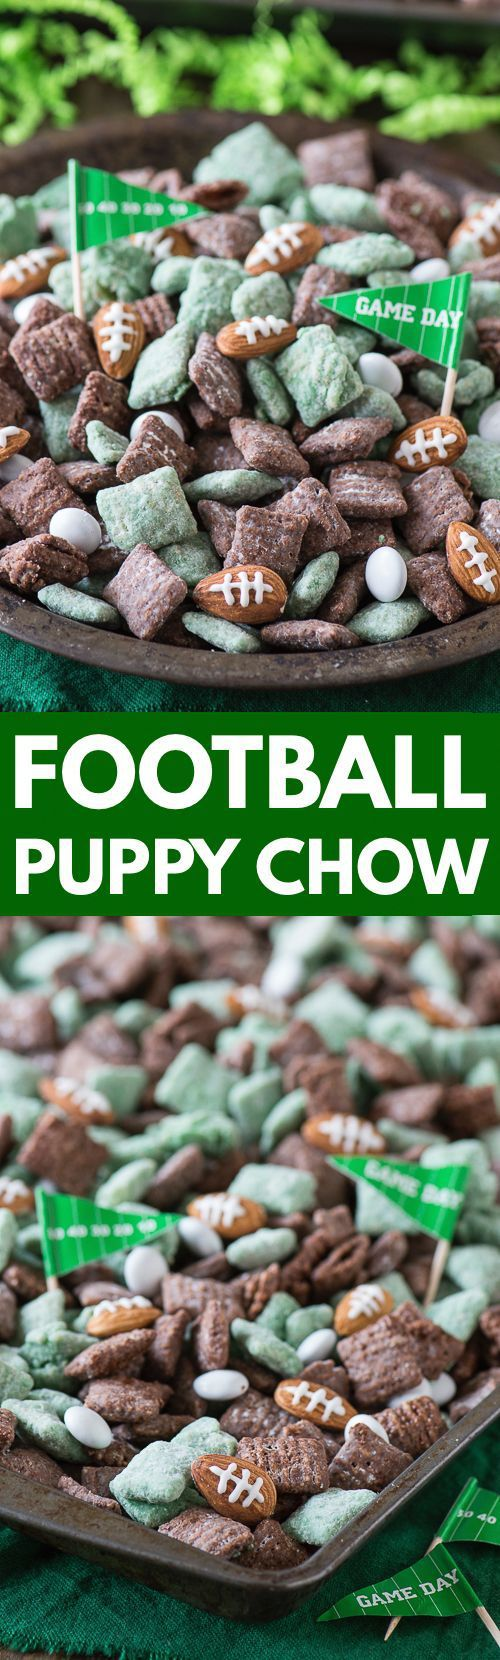 Read More About Football Puppy Chow | The First Year